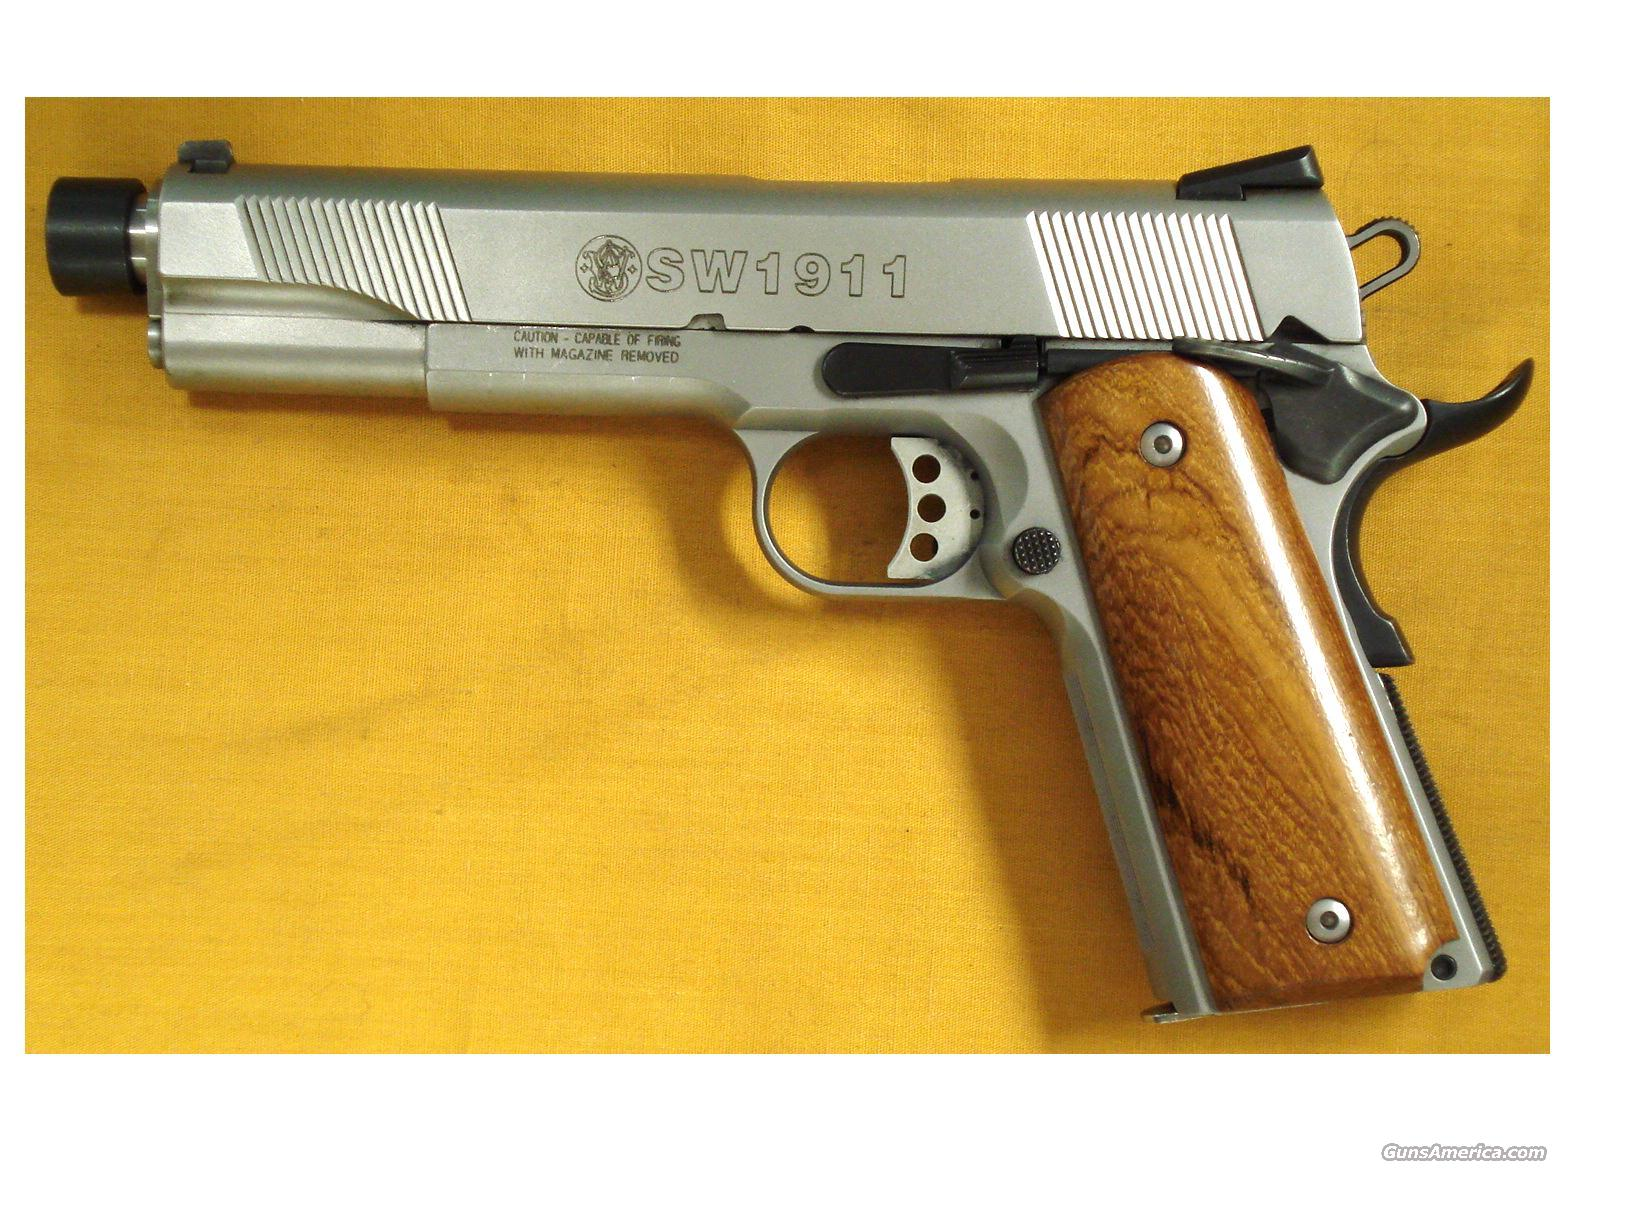 "S&W 1911 .45 5 1/2"" THREADED BBL  Guns > Pistols > Smith & Wesson Pistols - Autos > Steel Frame"